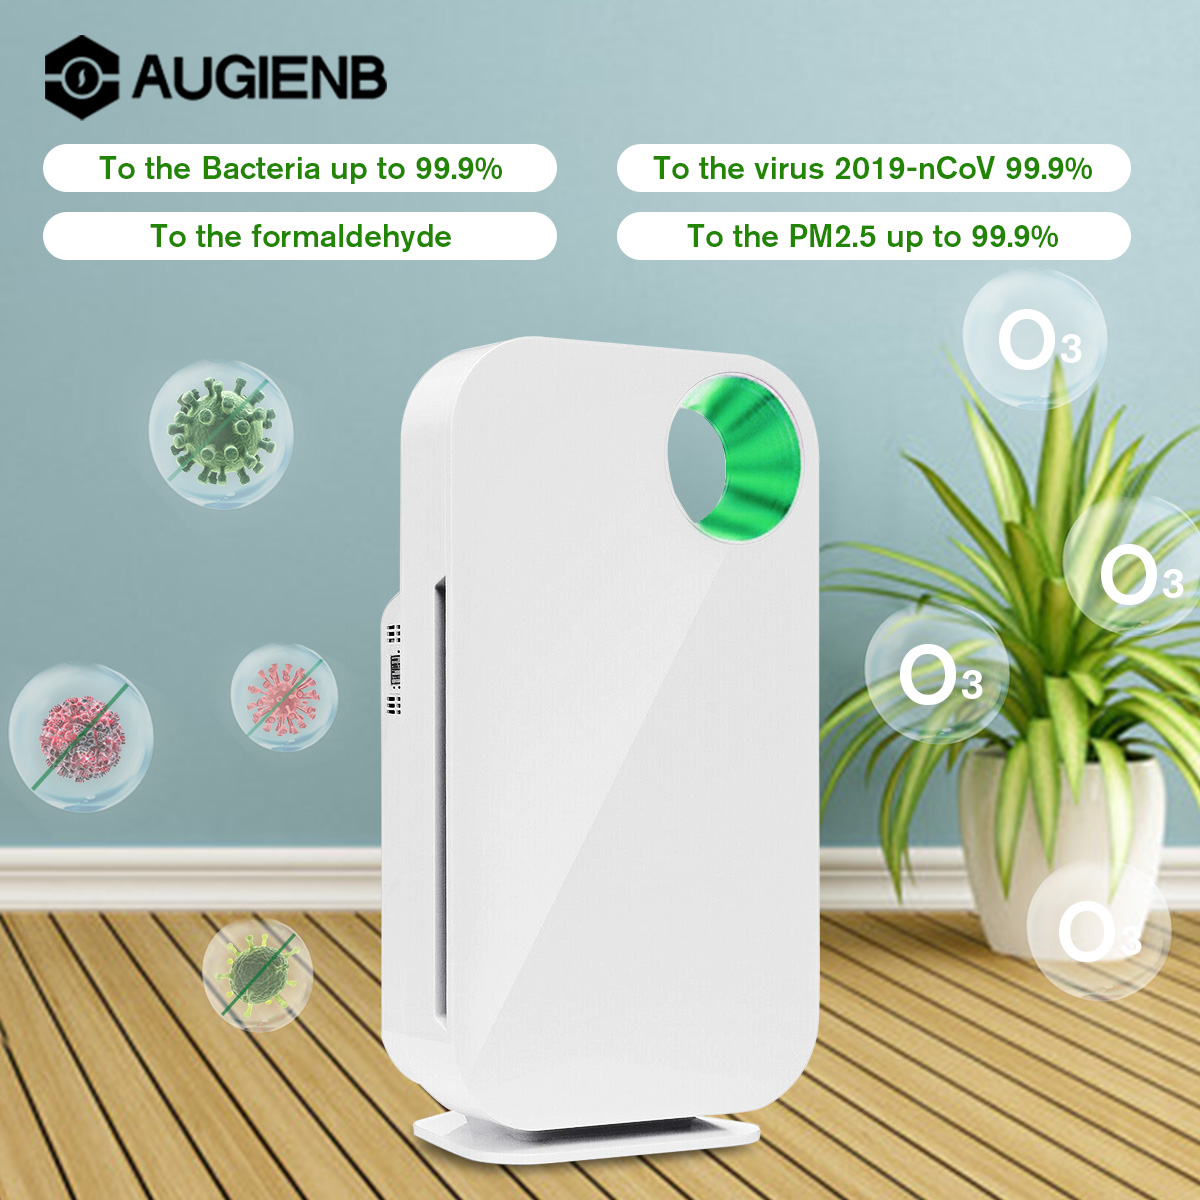 AUGIENB Air Purifier With HEPA Filter Allergies Eliminator Negative Ion Air Cleaner For PM2.5 Dust Pollen Smoke Pet Dander